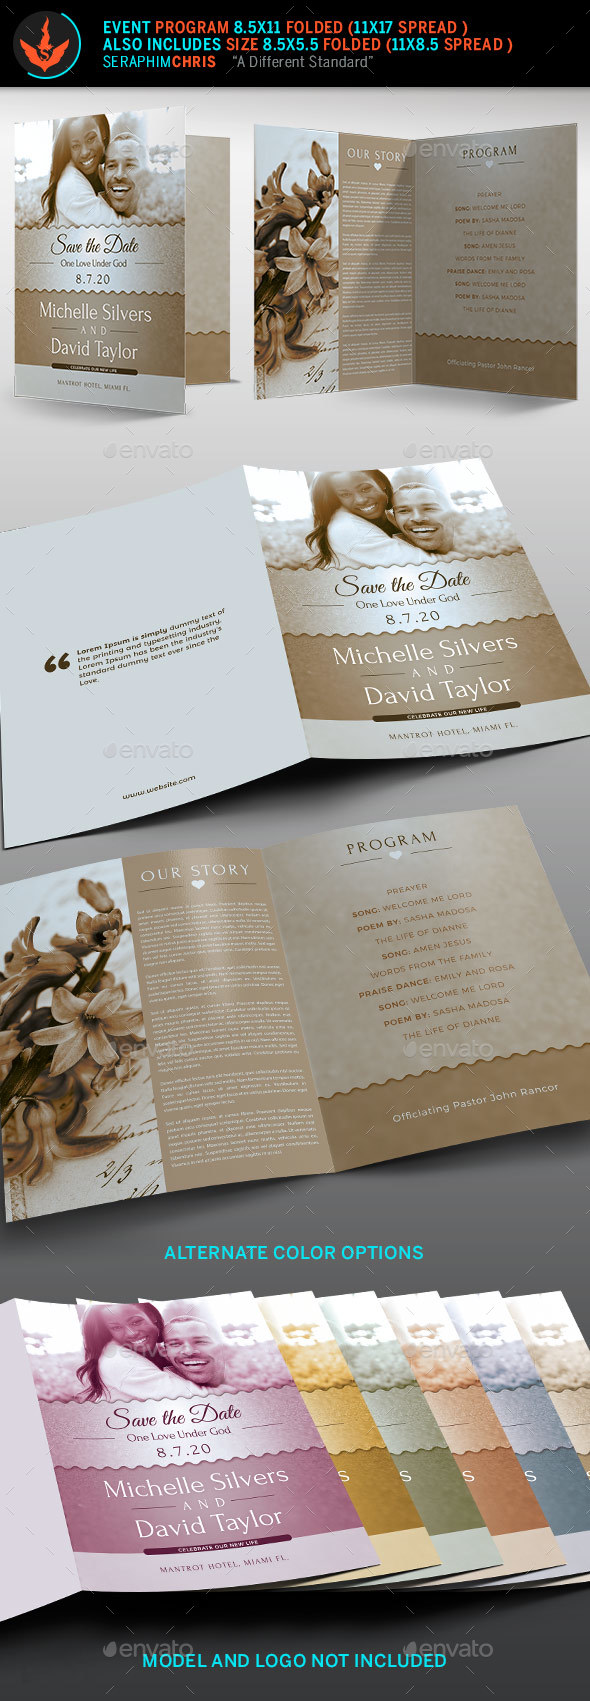 Vintage Wedding Program Template - Informational Brochures